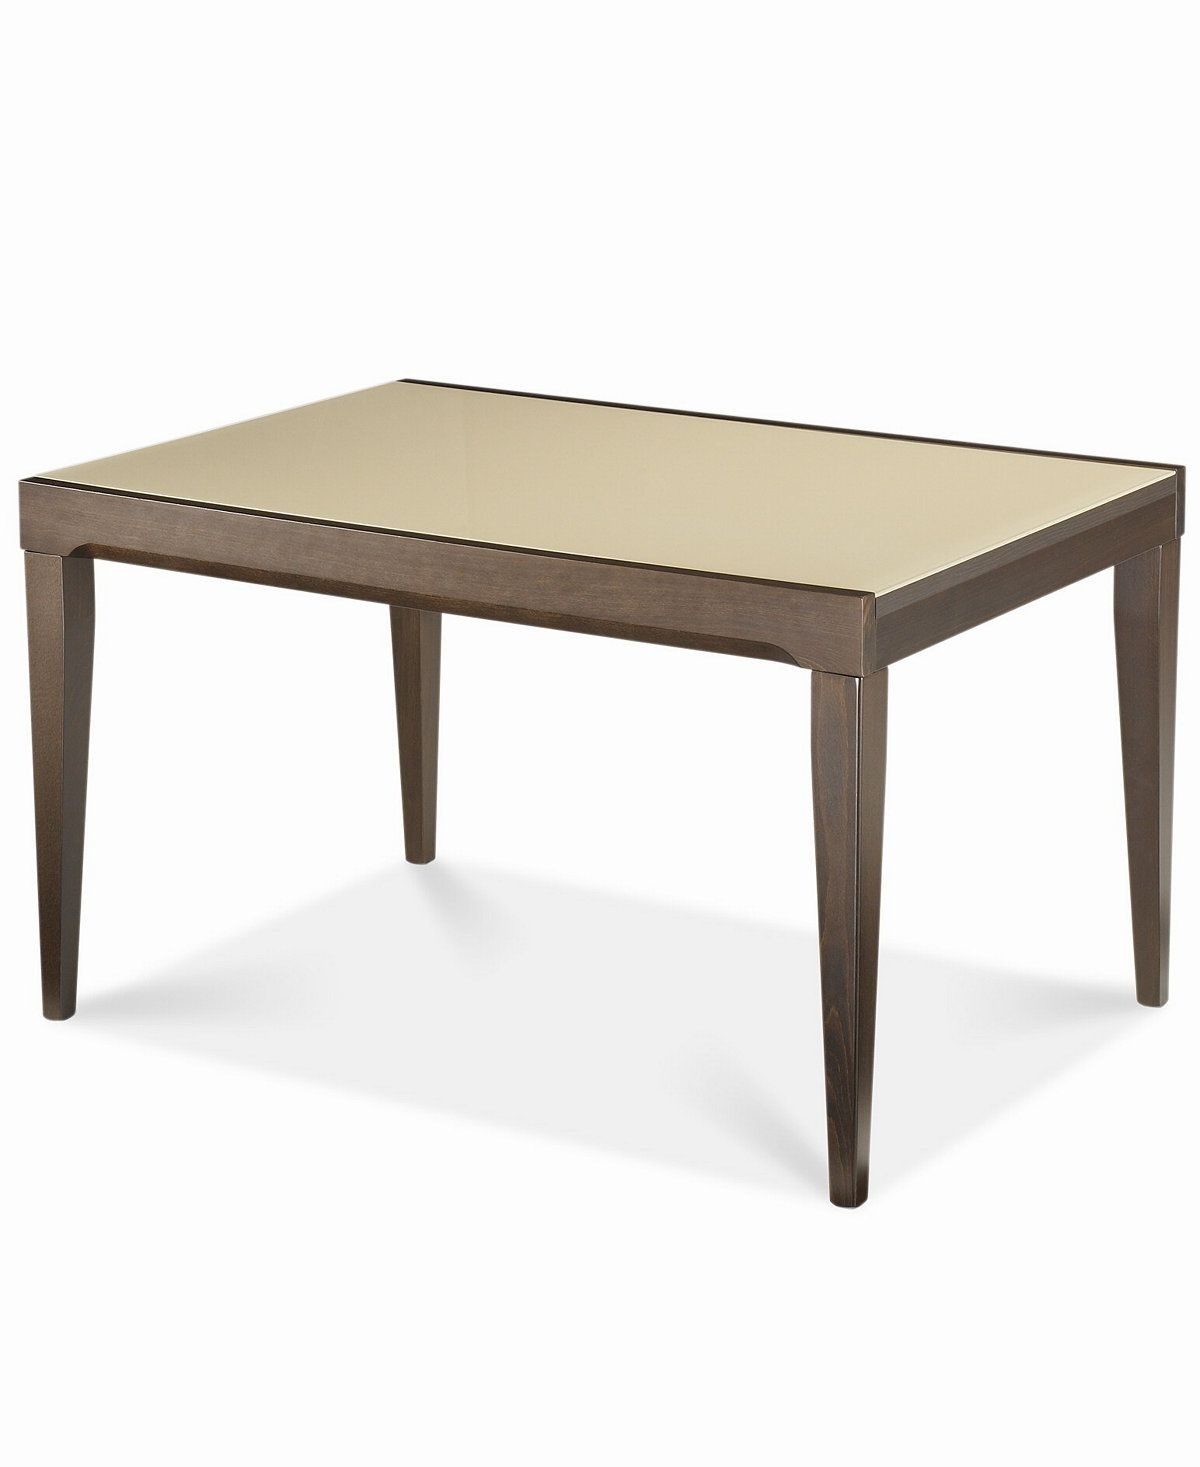 Newest Norwood 7 Piece Rectangular Extension Dining Sets With Bench, Host & Side Chairs for Café Latte Glass Top Expandable Dining Table At Macy's. $600. Starts